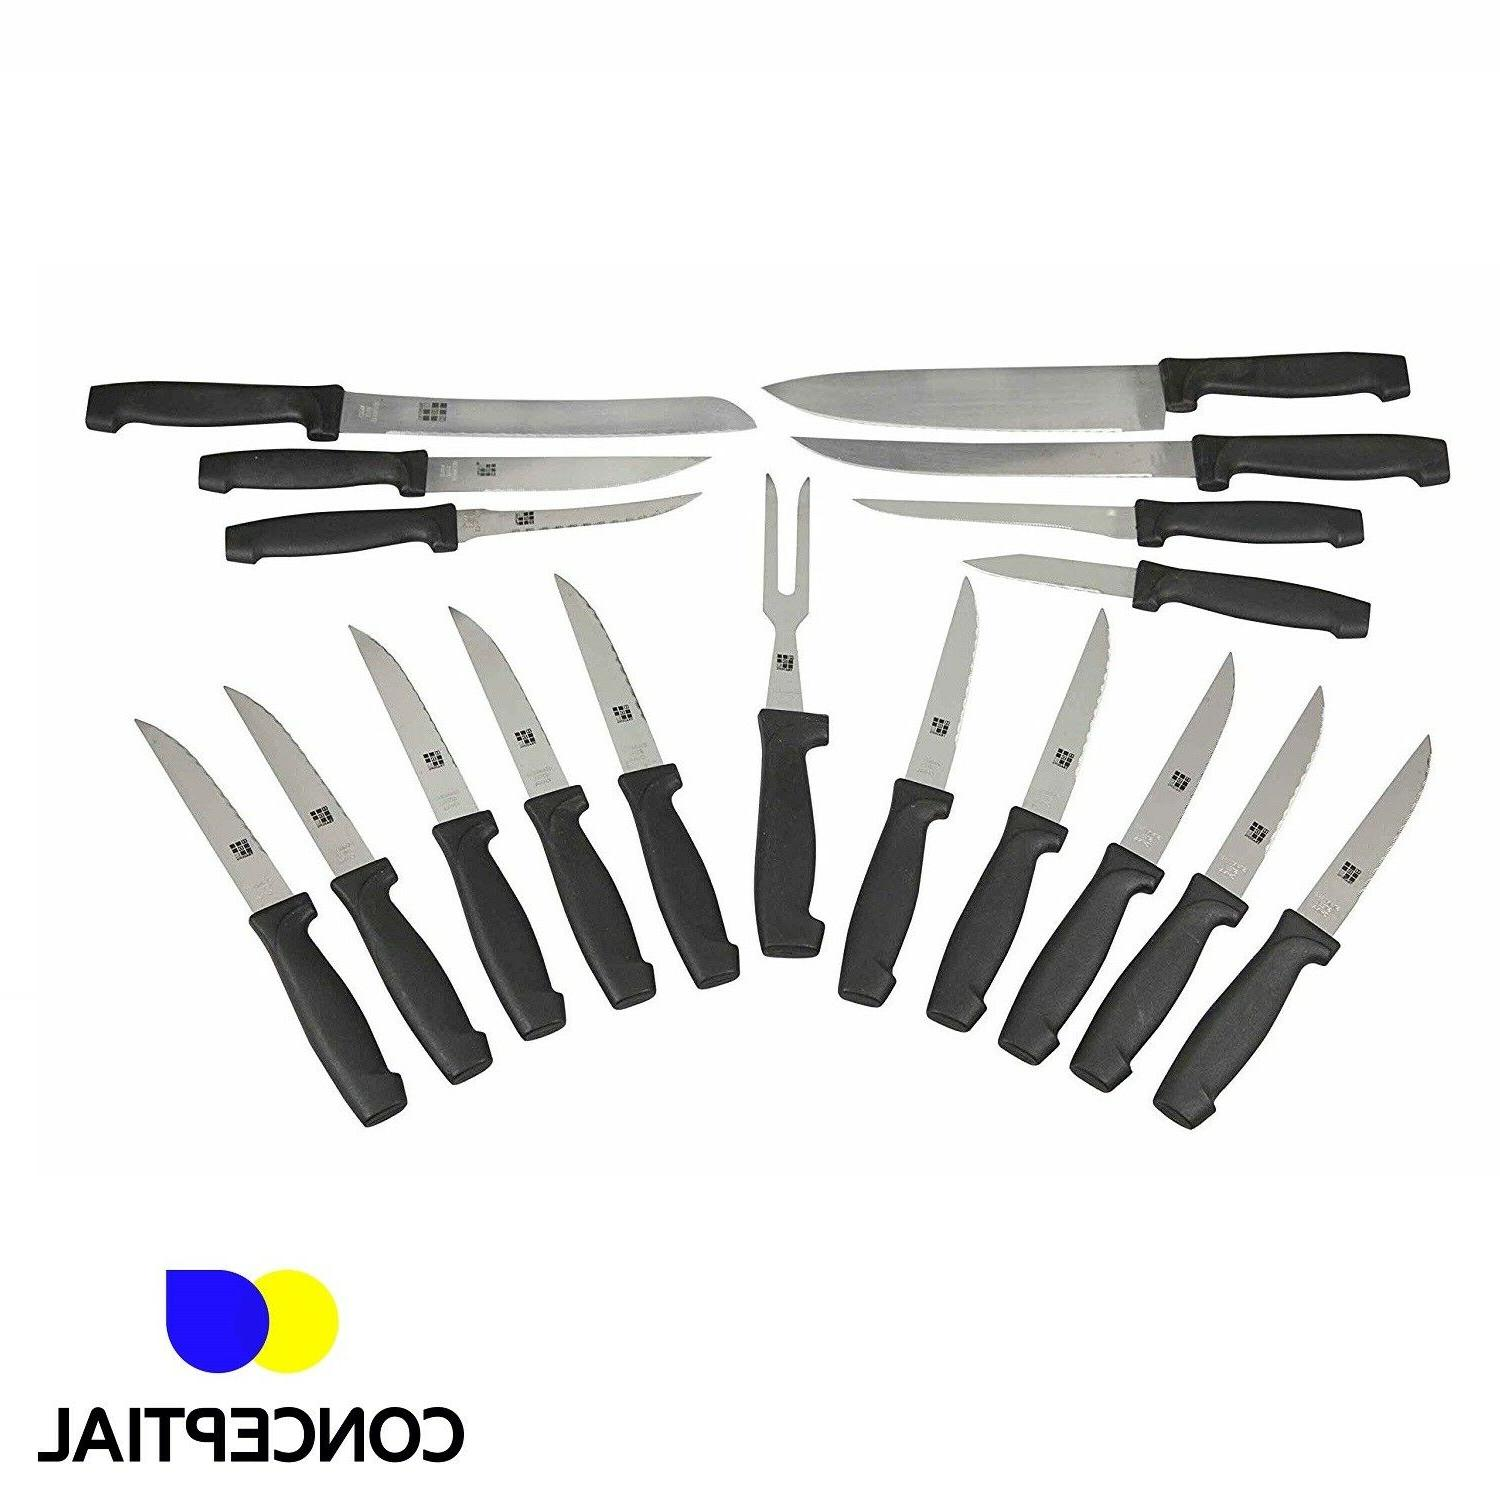 Knife Sharpening Stainless Steak 15 Pc